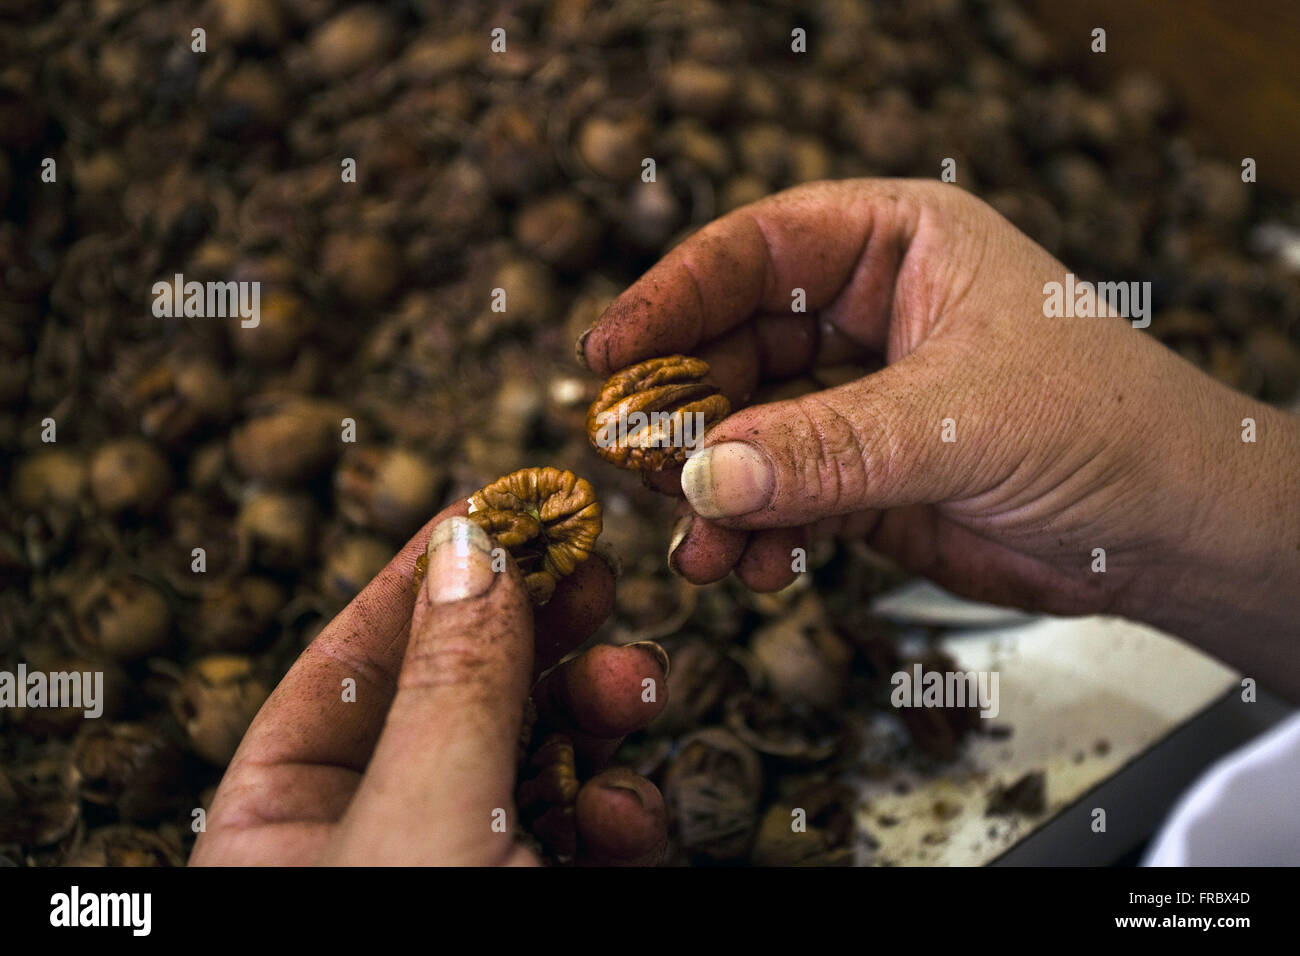 Walnuts or pecan piece being peeled and selected for commercialization - Stock Image